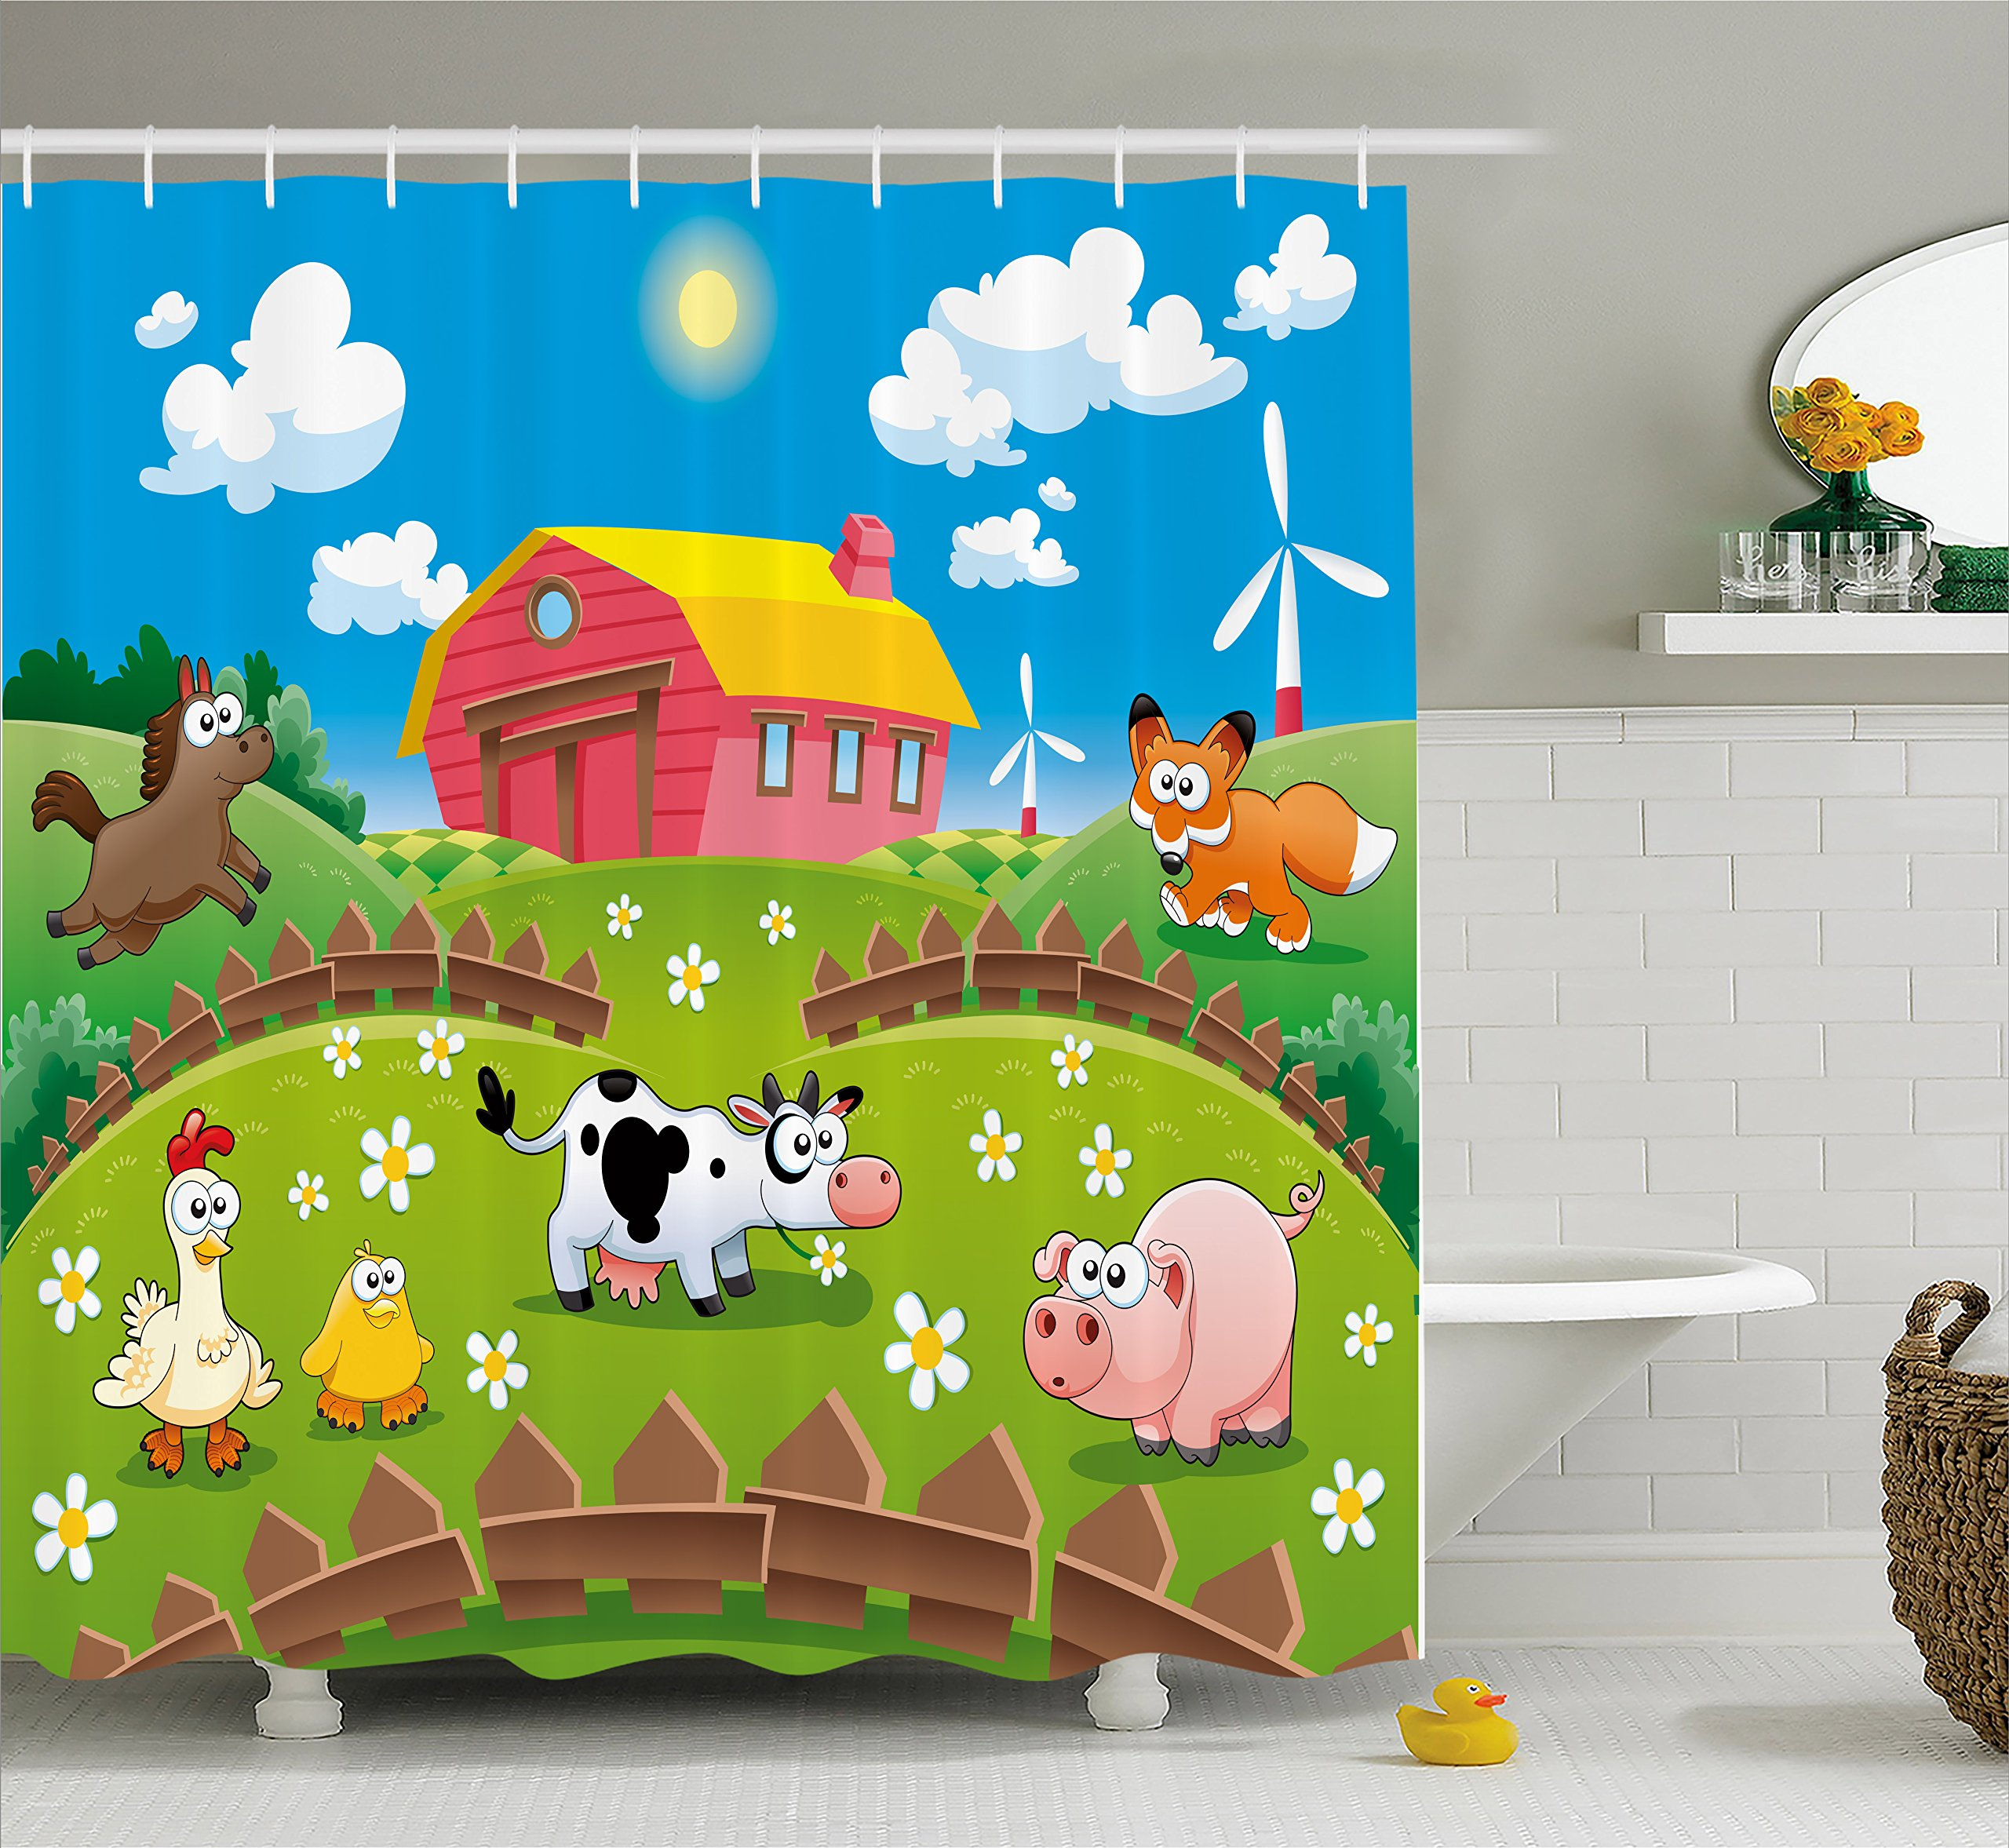 Ambesonne Cartoon Shower Curtain by, Farm with Cow Fox Chicken Pig Horse in the Fences Countryside Rural Children Design, Fabric Bathroom Decor Set with Hooks, 70 Inches, Multicolor